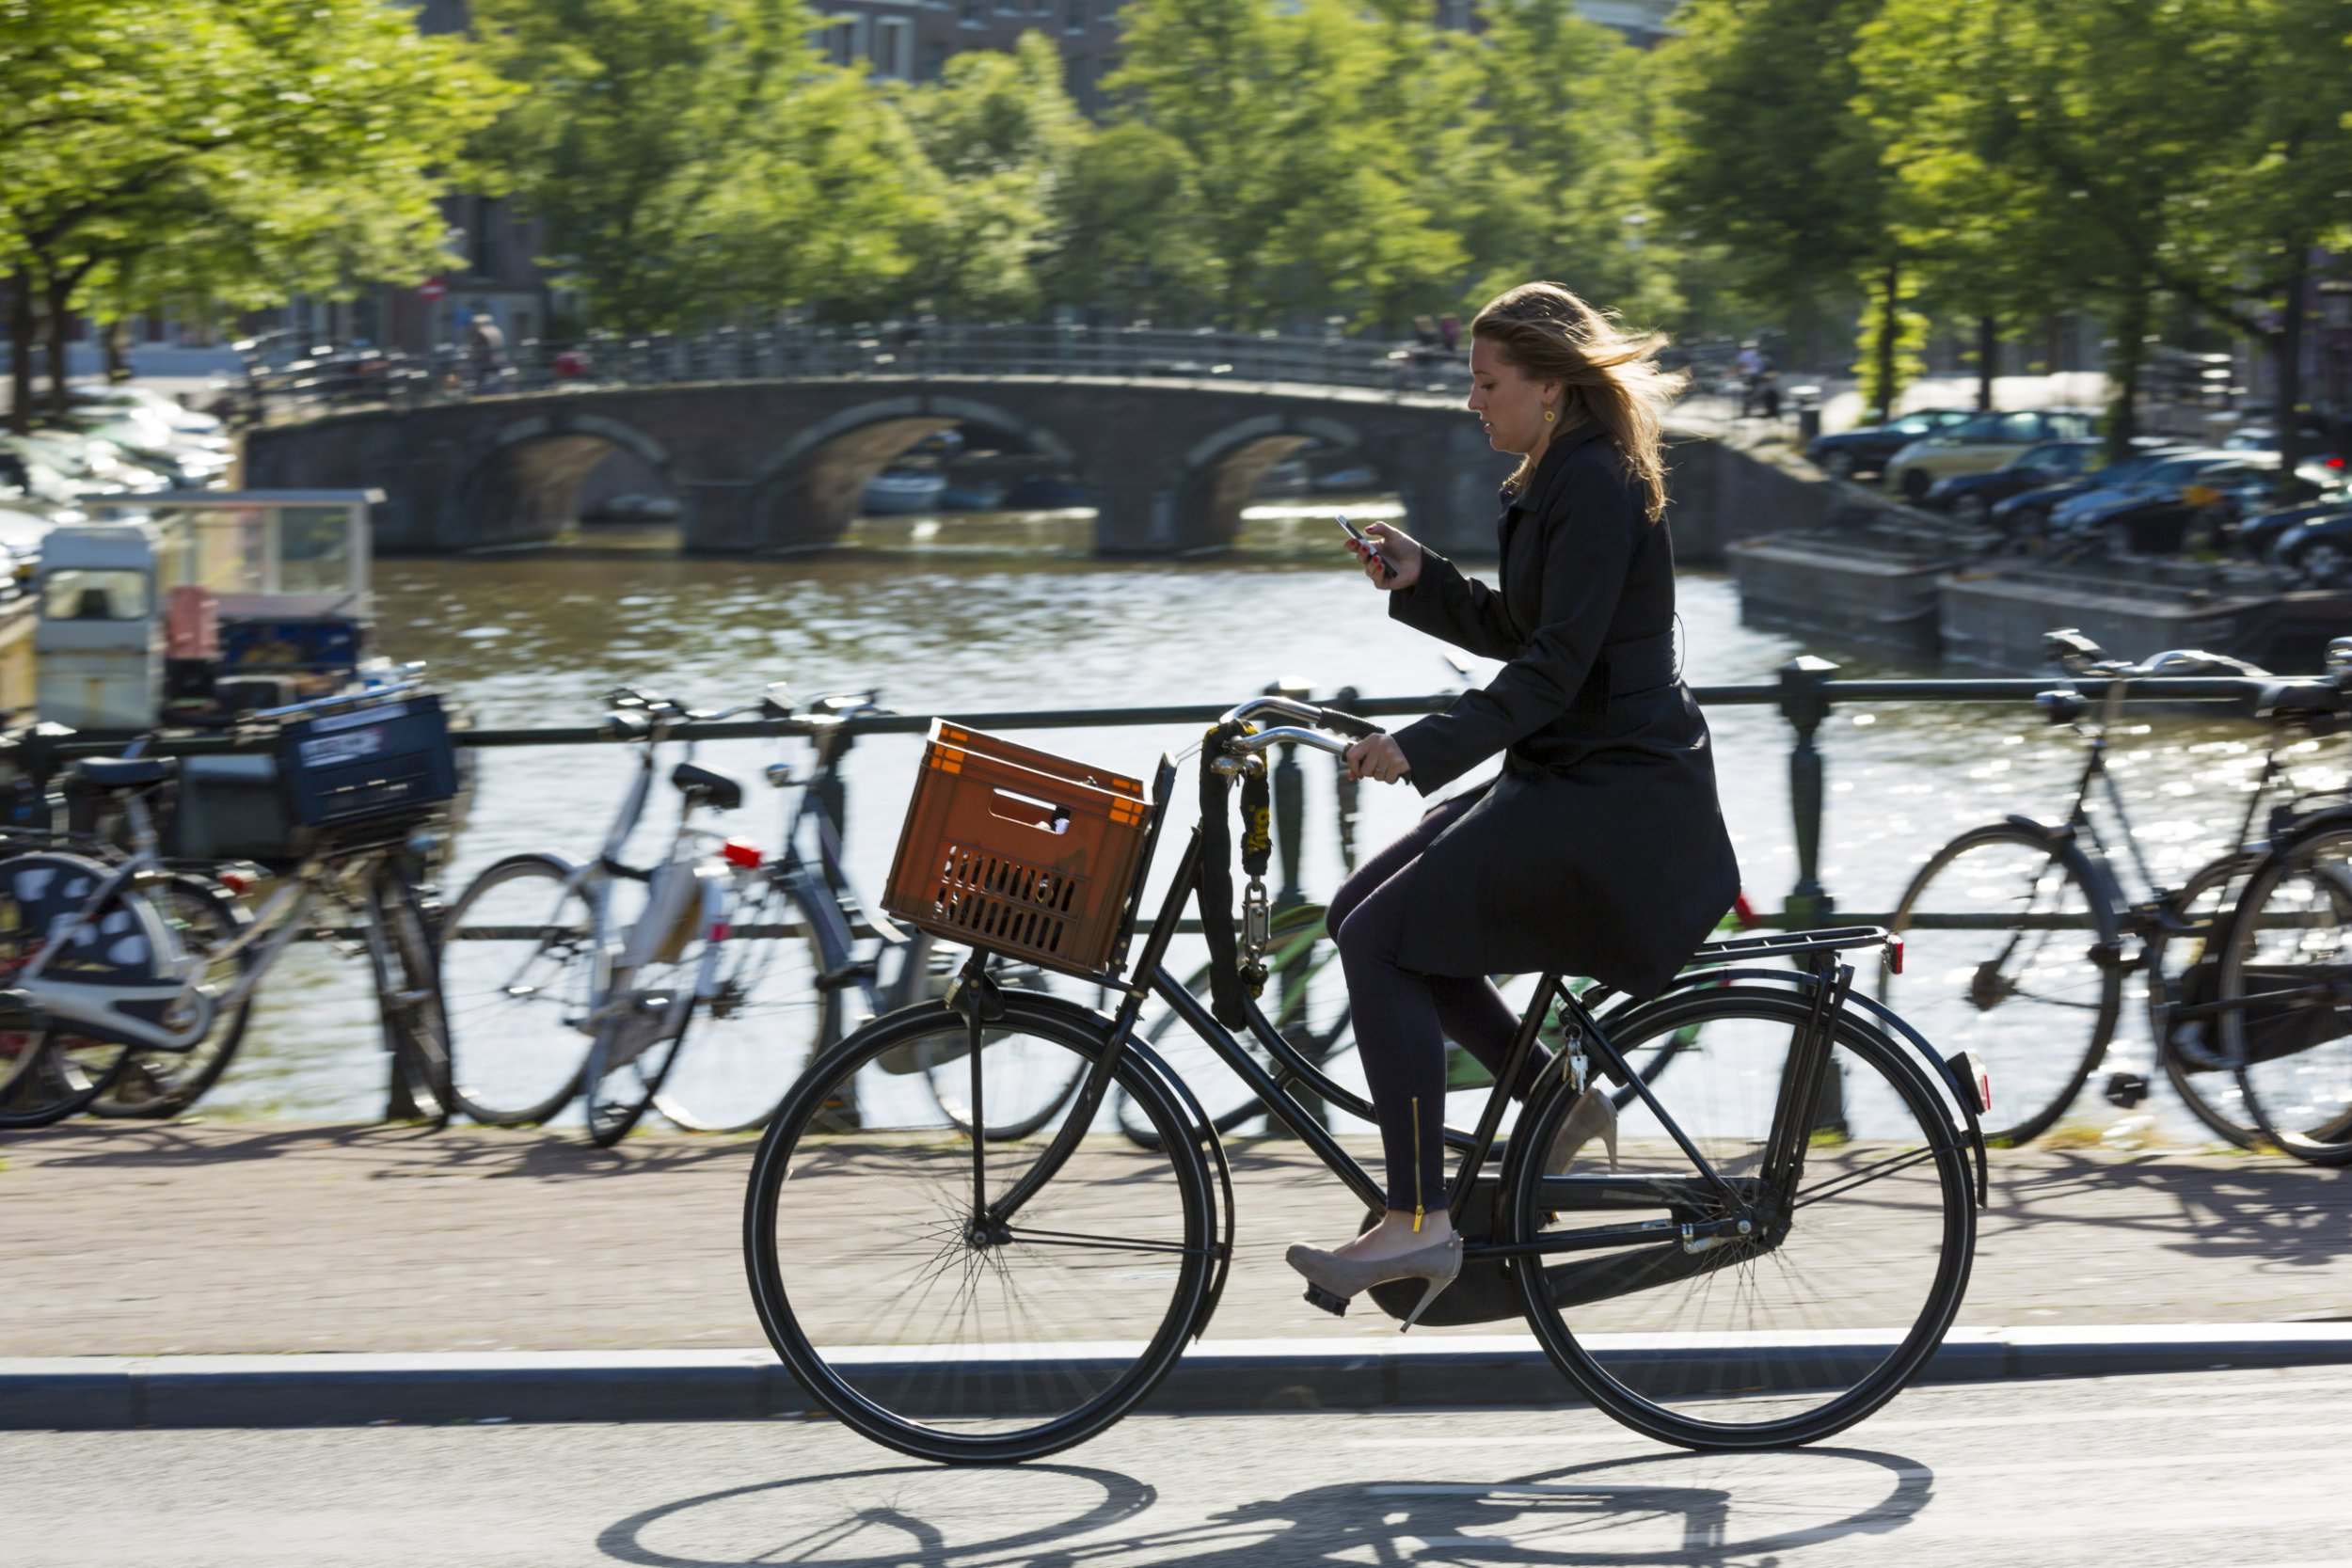 Cyclists to be banned from using mobile phones in the Netherlands